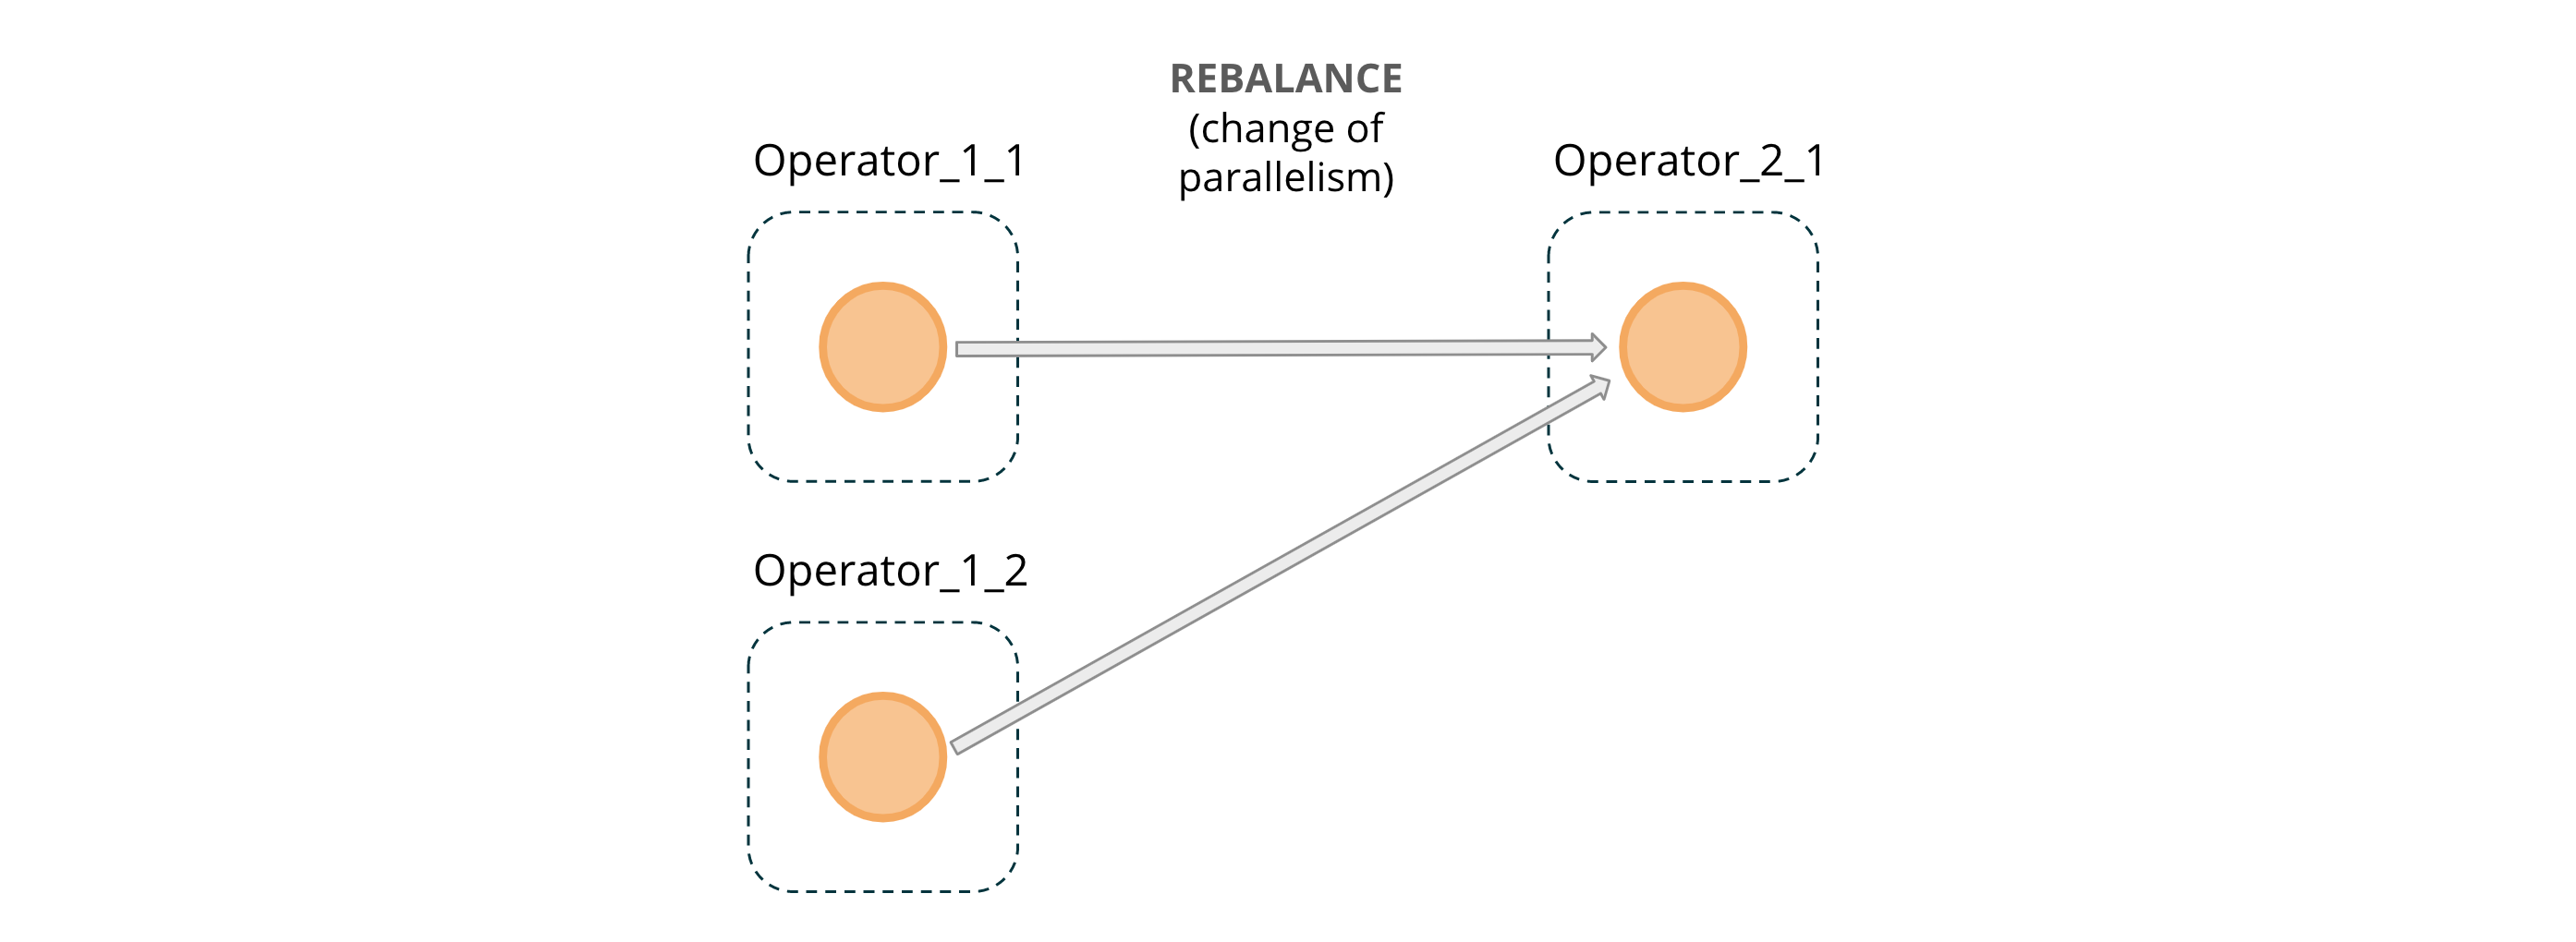 Figure 5: REBALANCE message passing across operator instances